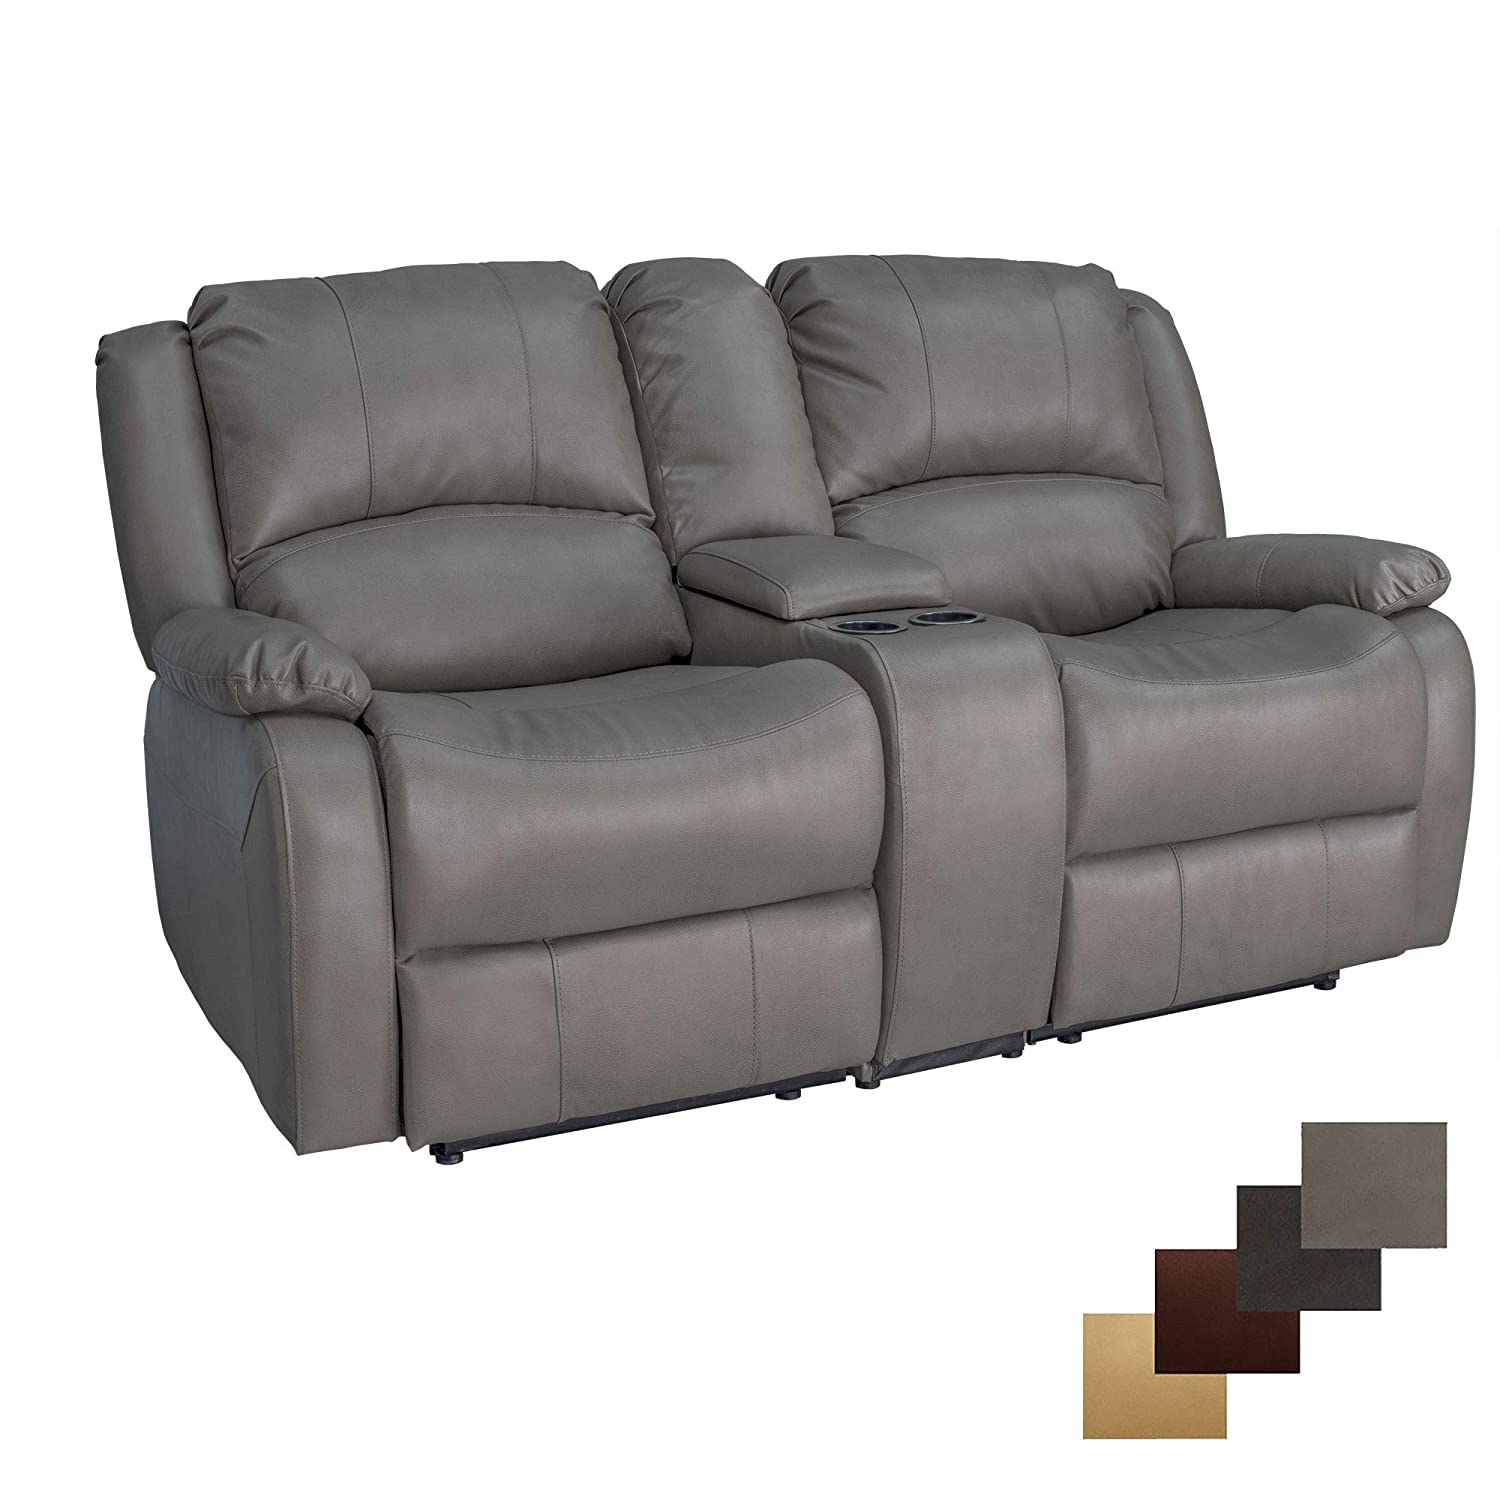 """RecPro Charles Collection   67"""" Double Recliner RV Sofa & Console   RV Zero Wall Loveseat   Wall Hugger Recliner   RV Theater Seating   RV Furniture   RV Sofa   RV Sofa Bed   RV Couch   Putty"""